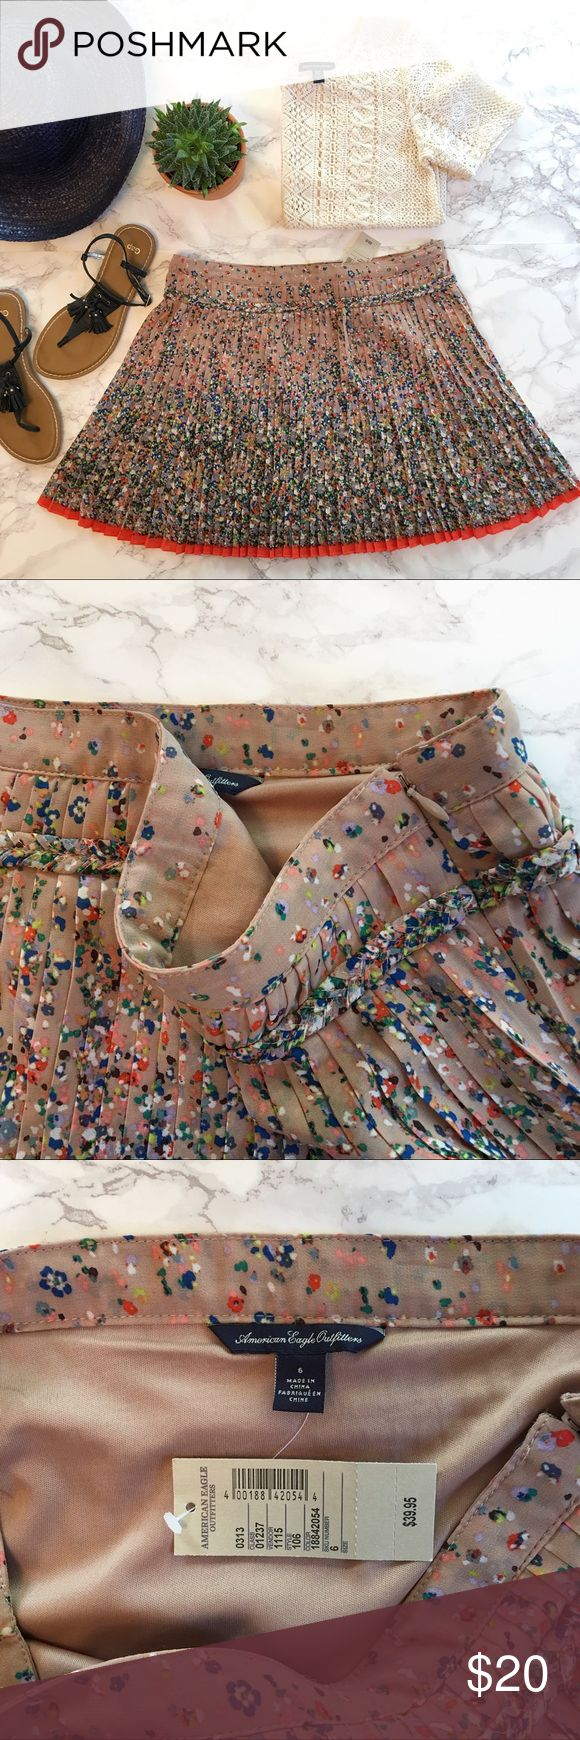 "American Eagle Pleated Skirt Brand new with tags American Eagle Outfitters knife pleated circle skirt. Tiny floral pattern. Fully lined. Side zip ▫️Shell 100% polyester ▫️Lining 100% cotton ▫️Machine be wash and dry ▫️NWT ▫️Pet free/smoke free  Measurements taken flat ▫️Waist 15"" ▫️Length 15""  F.OT.6.17 American Eagle Outfitters Skirts"